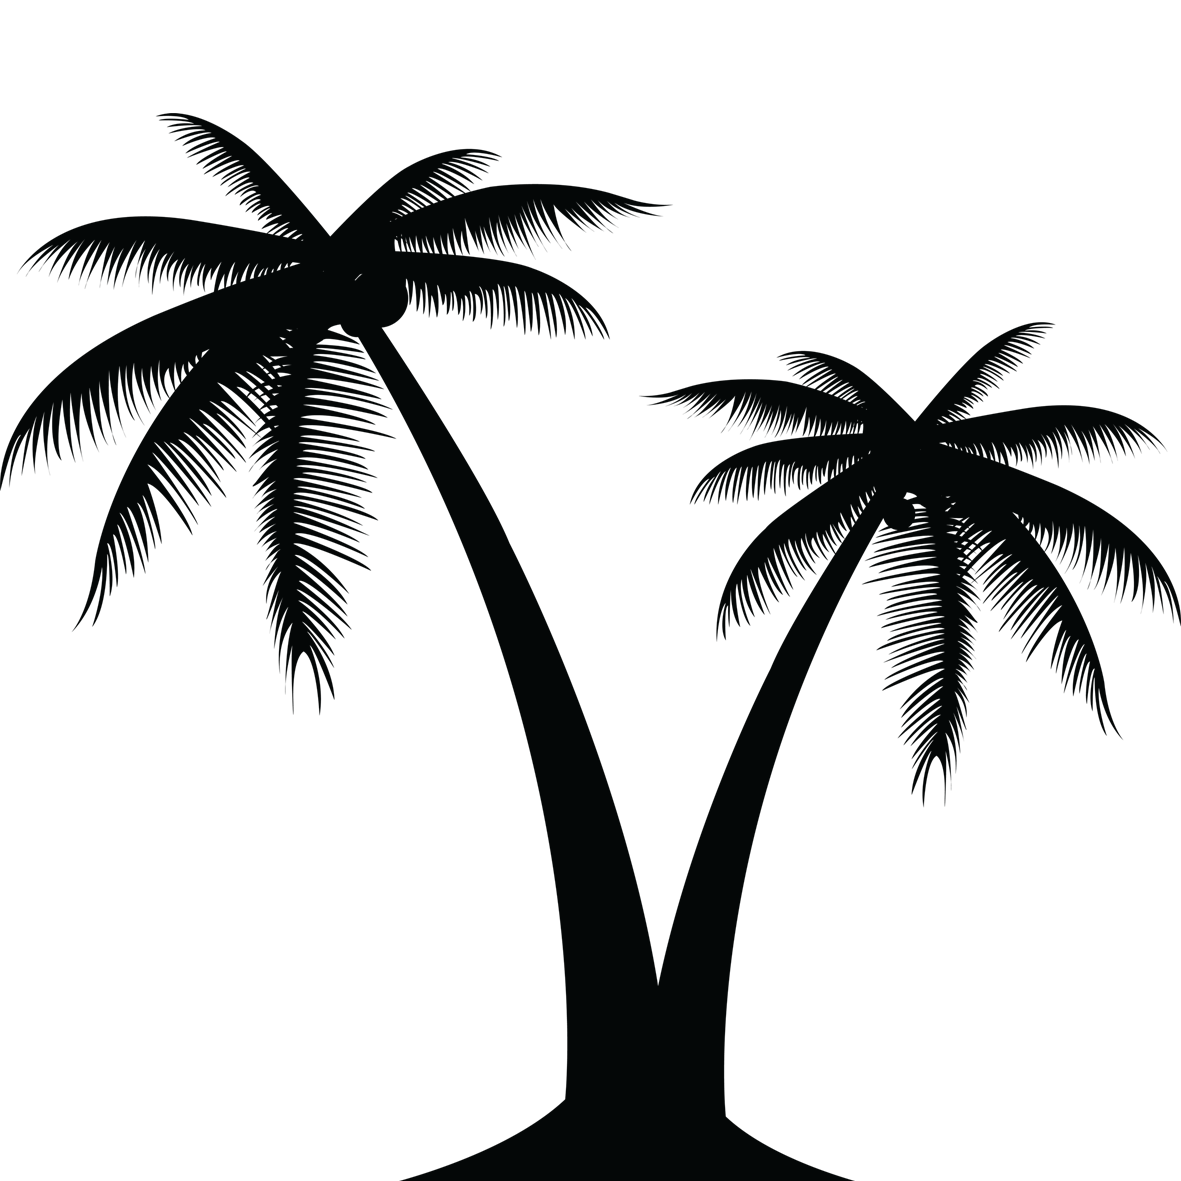 Coconut tree clipart black and white svg freeuse stock Coconut Tree Silhouette at GetDrawings.com | Free for personal use ... svg freeuse stock